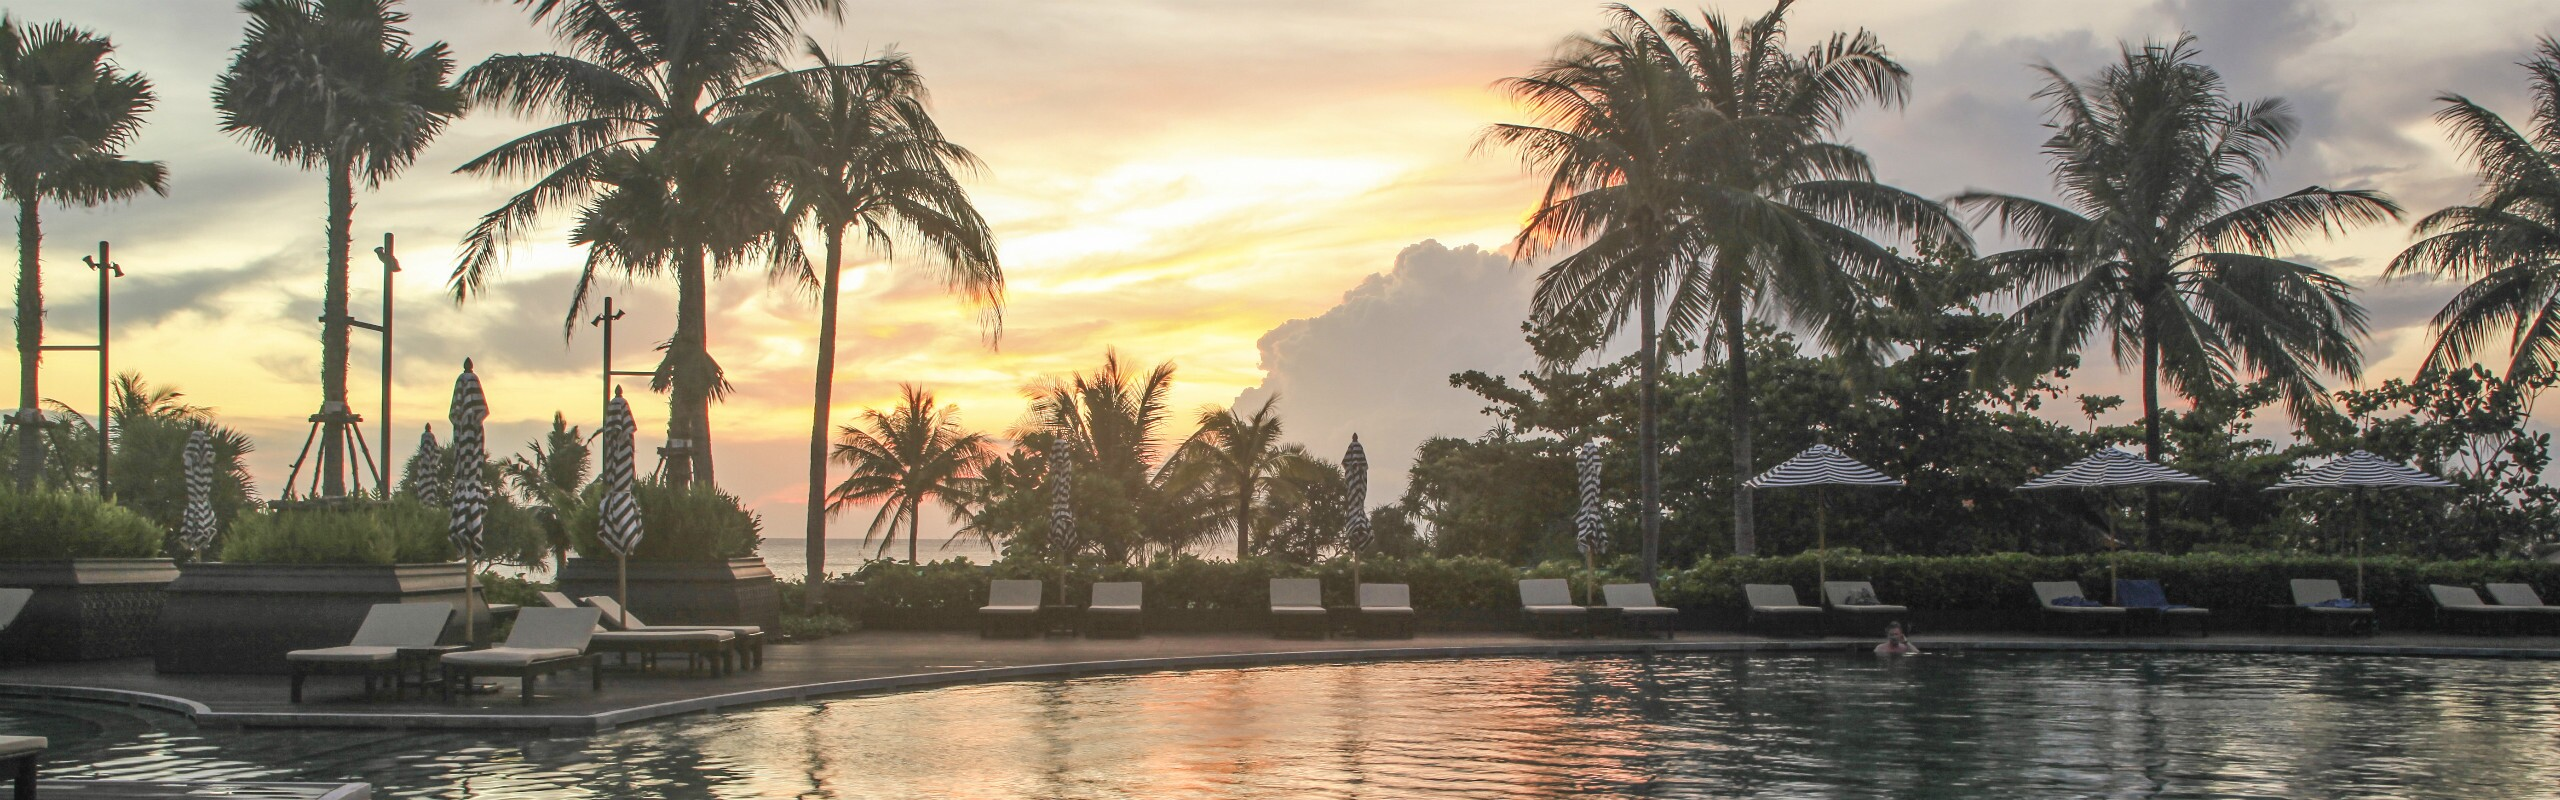 How to Choose a Hotel in Phuket